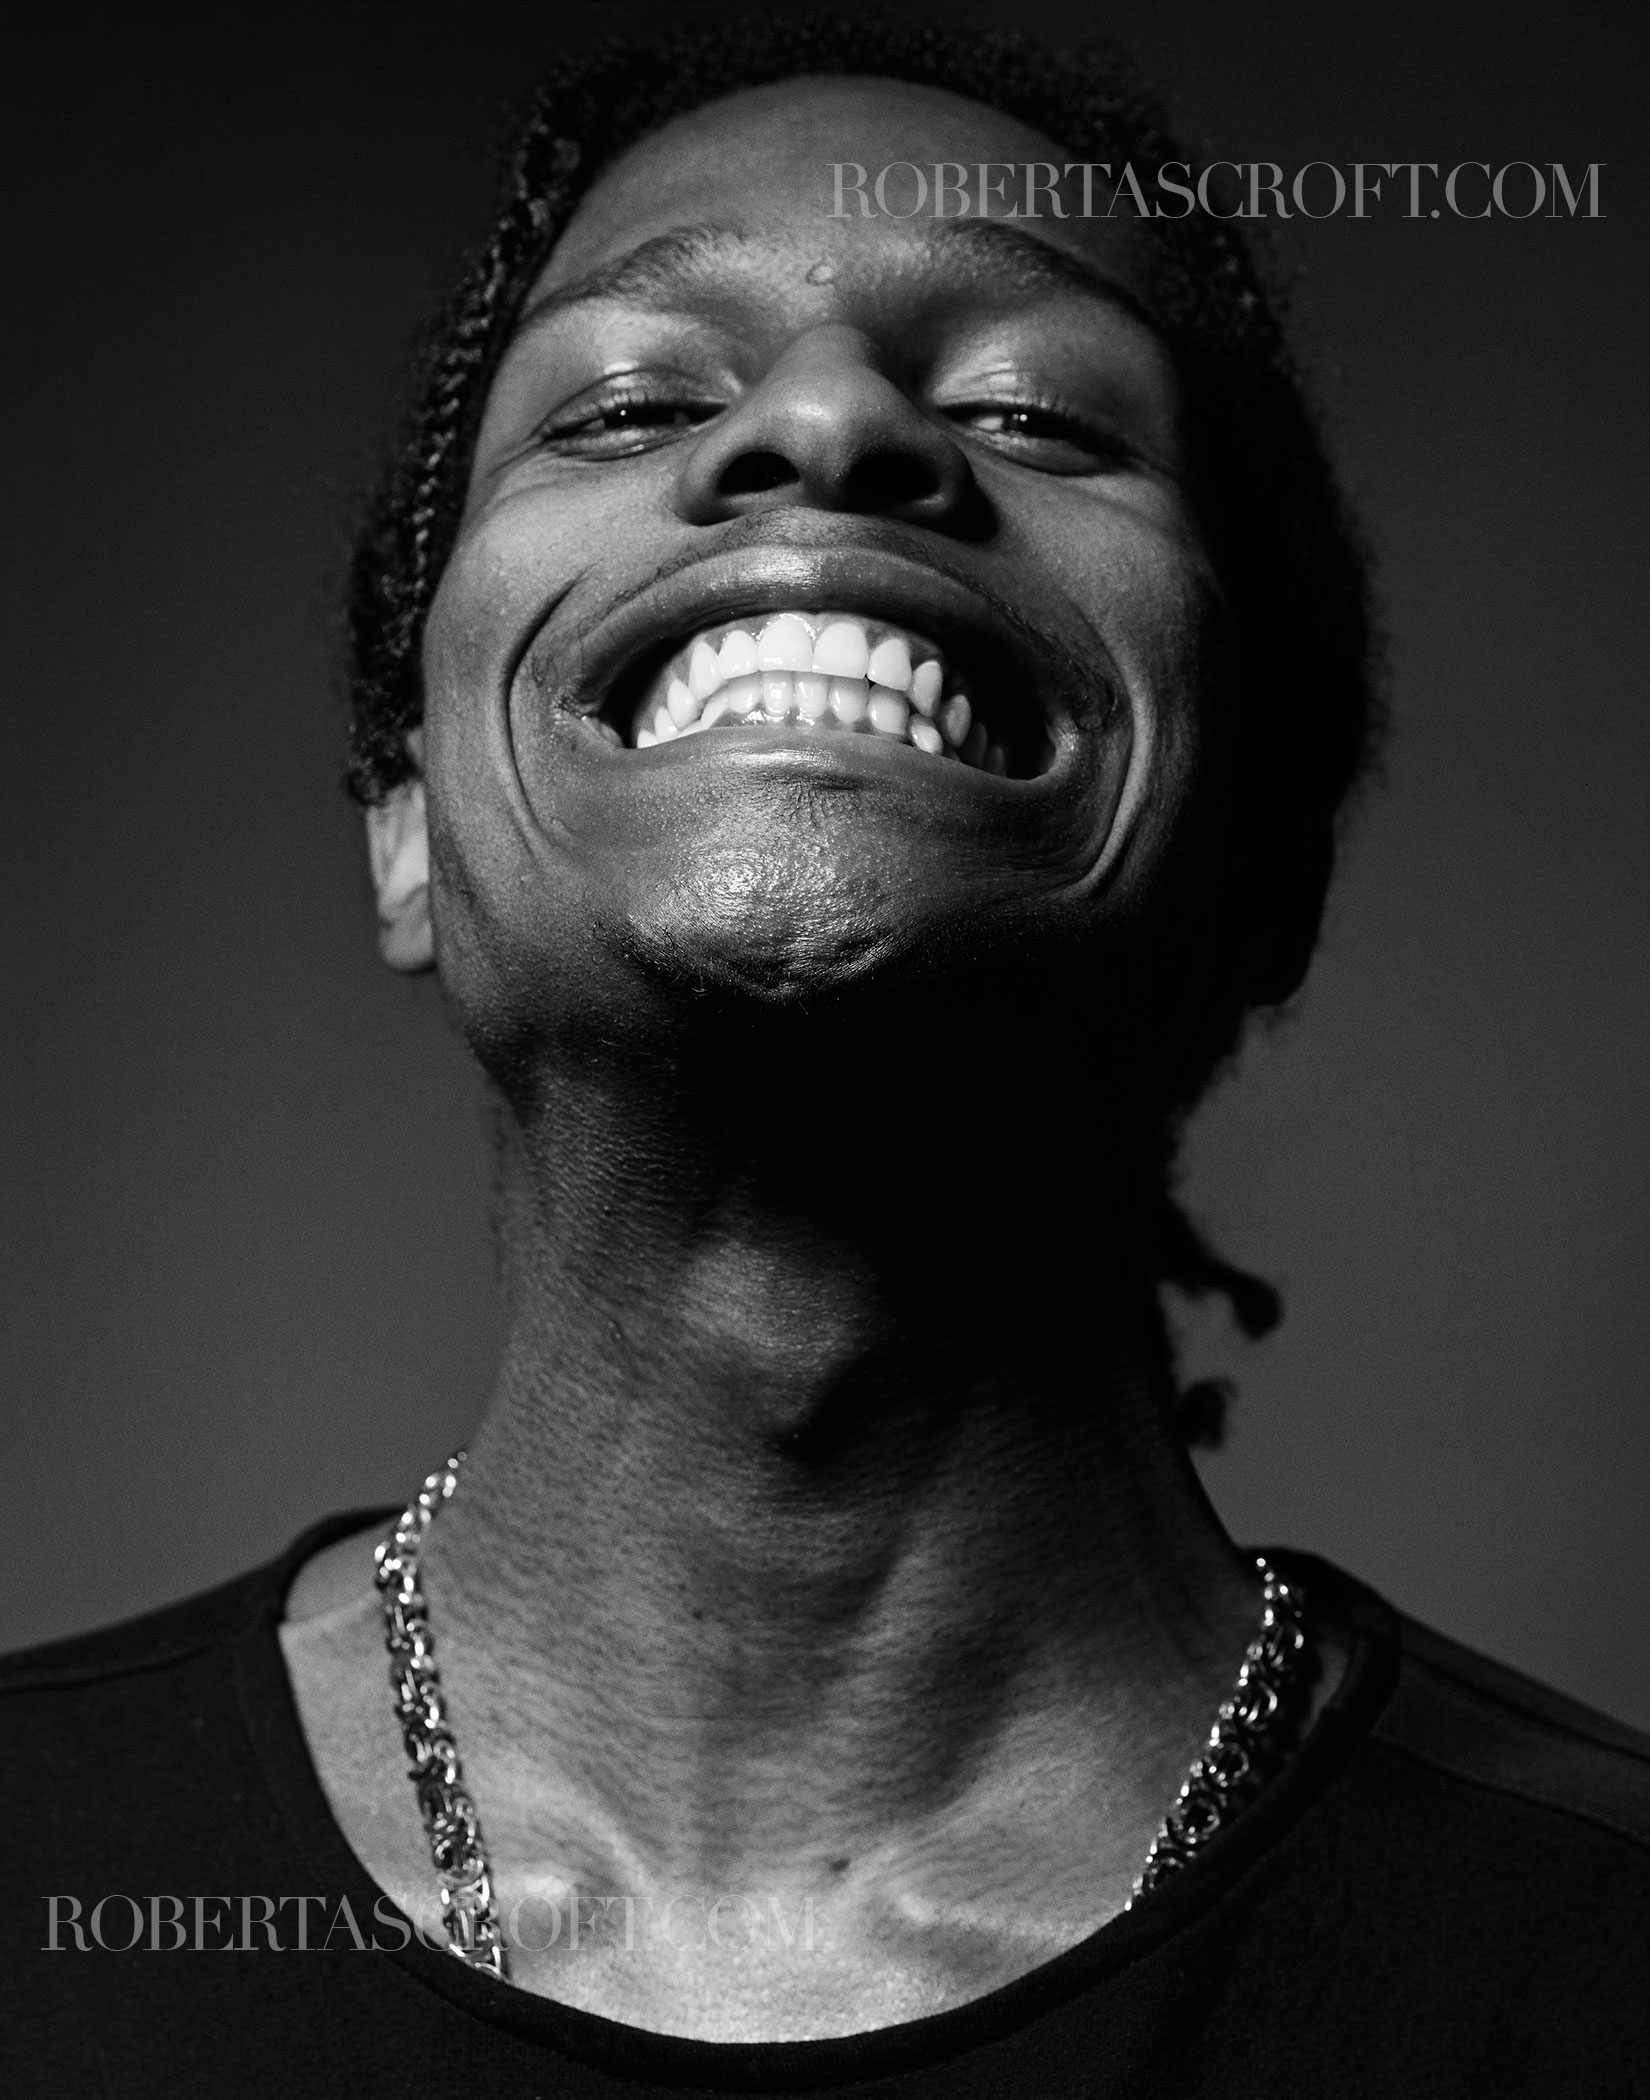 A$AP-Rocky-by-Robert-Ascroft-01.jpg